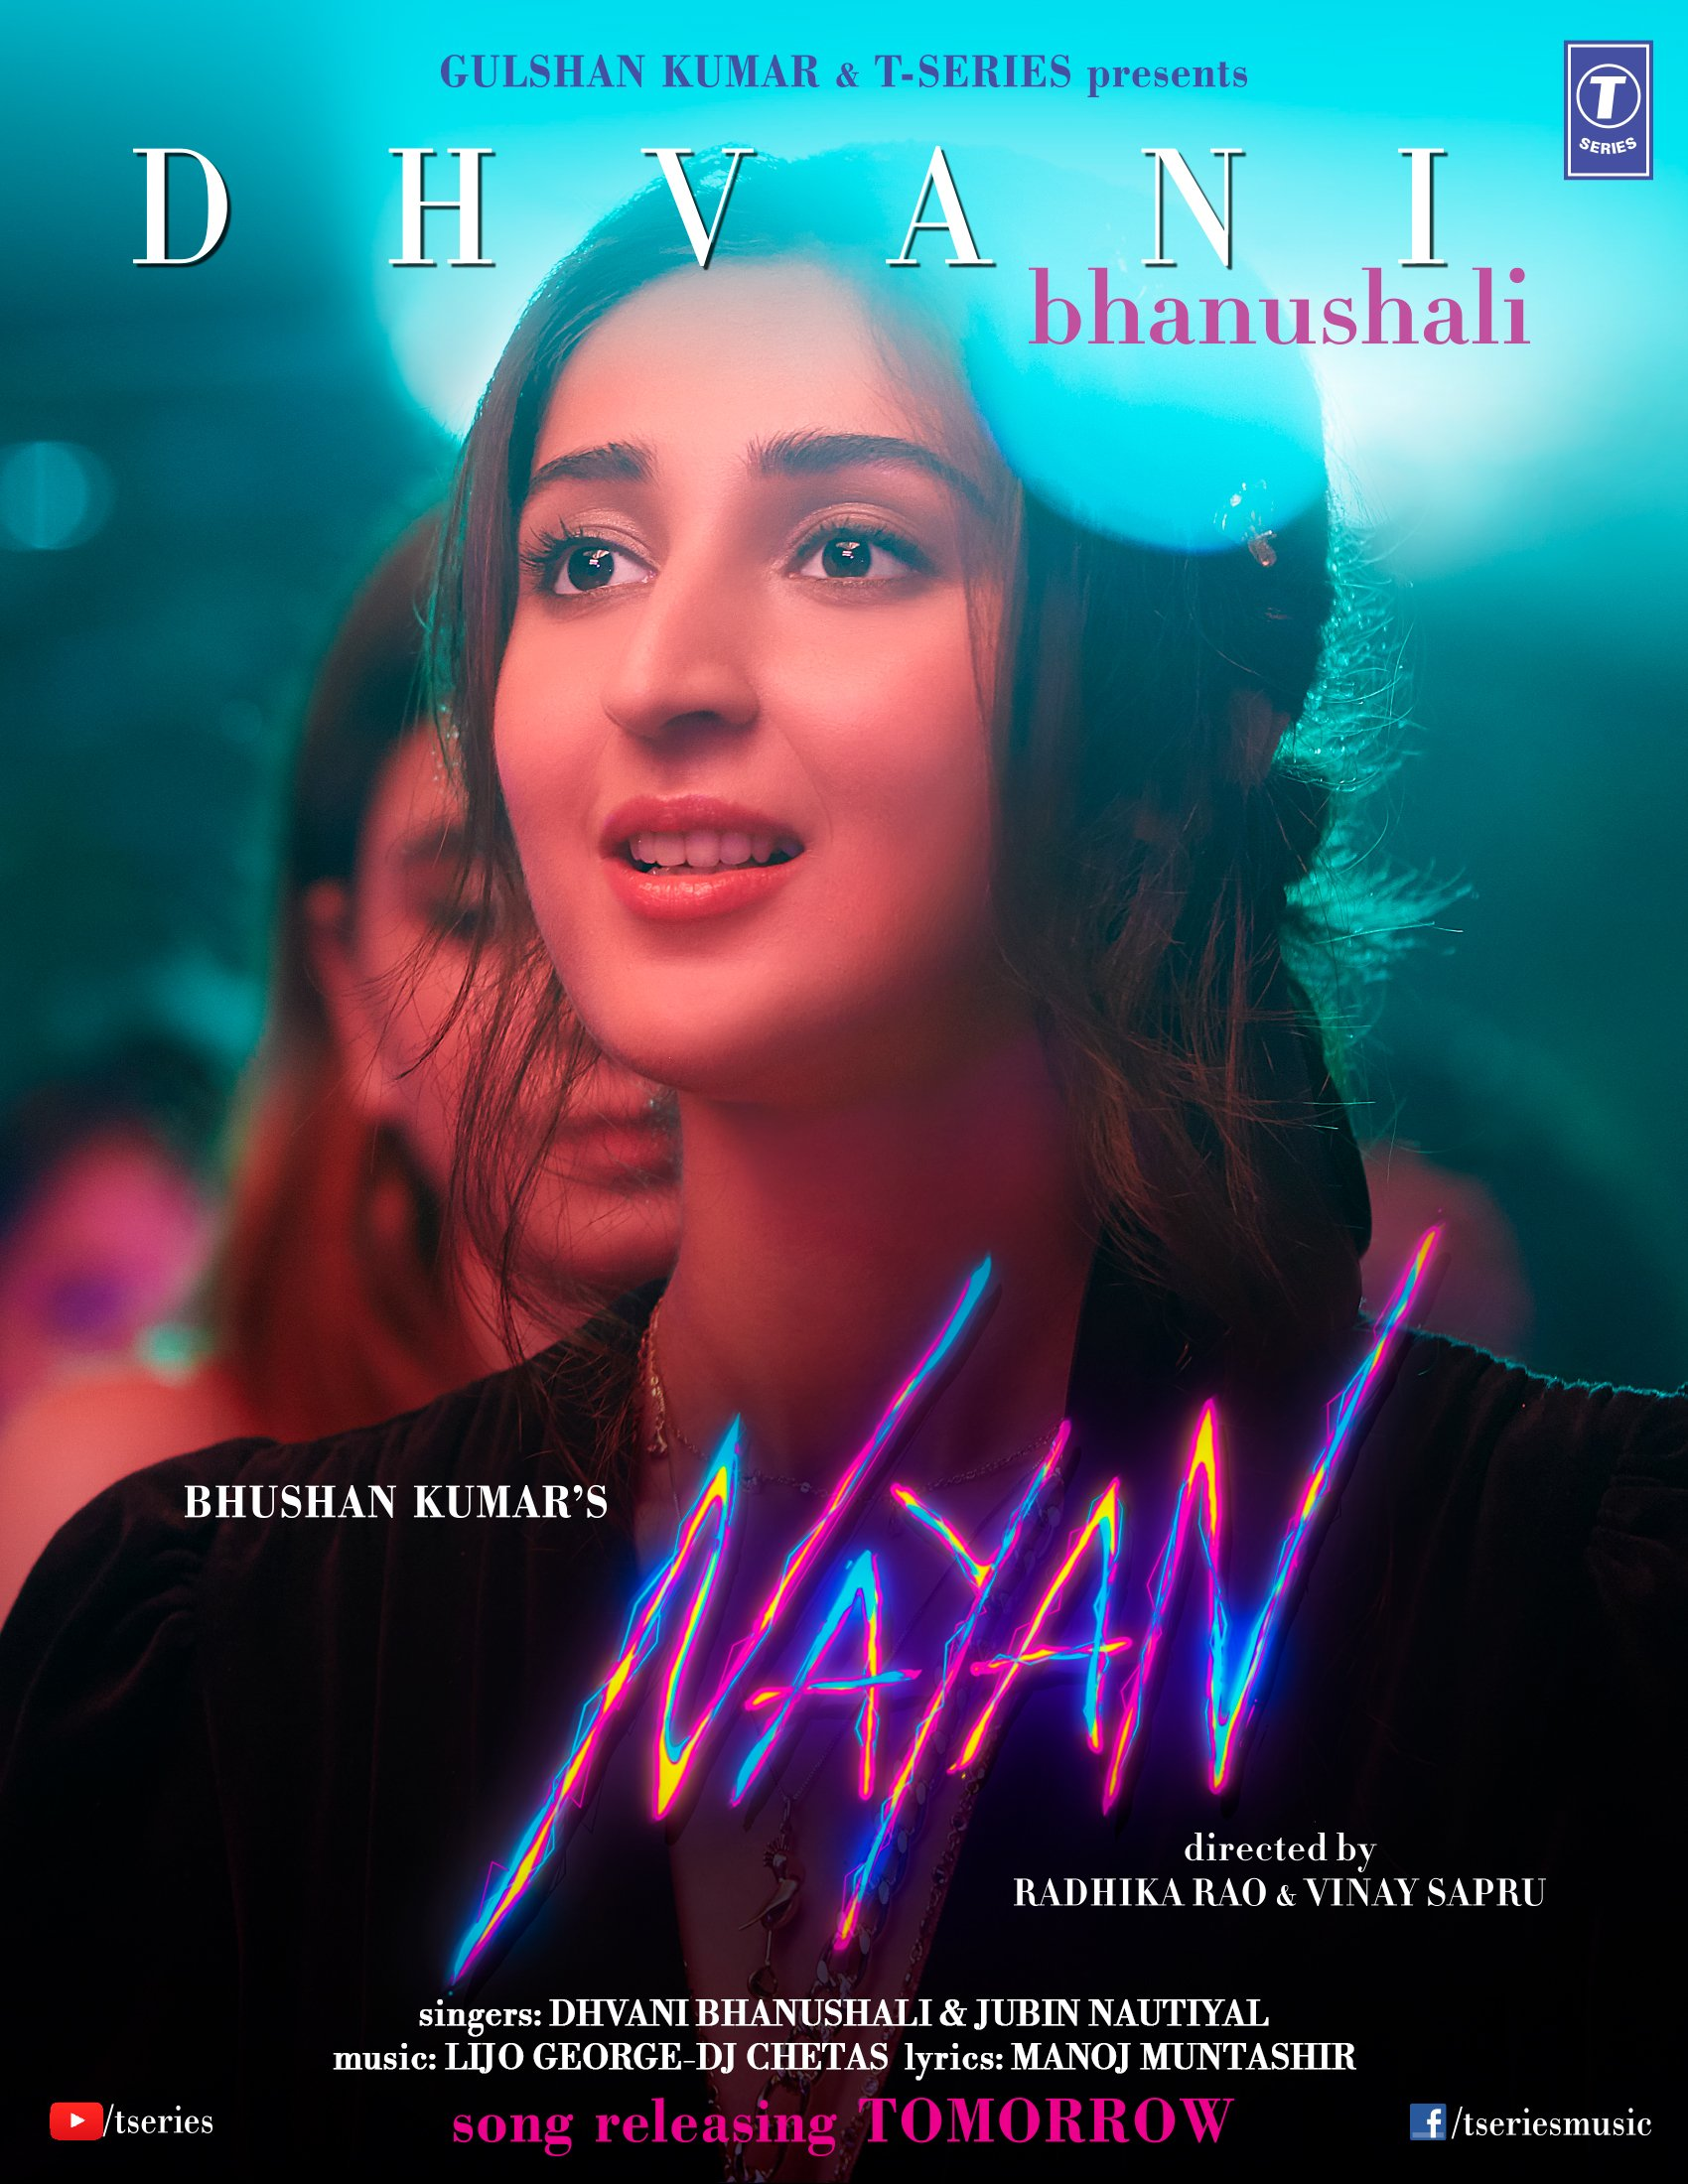 Nayan By Dhvani Bhanushali & Jubin Nautiyal Hindi Full Video Song 1080p HDRip Download